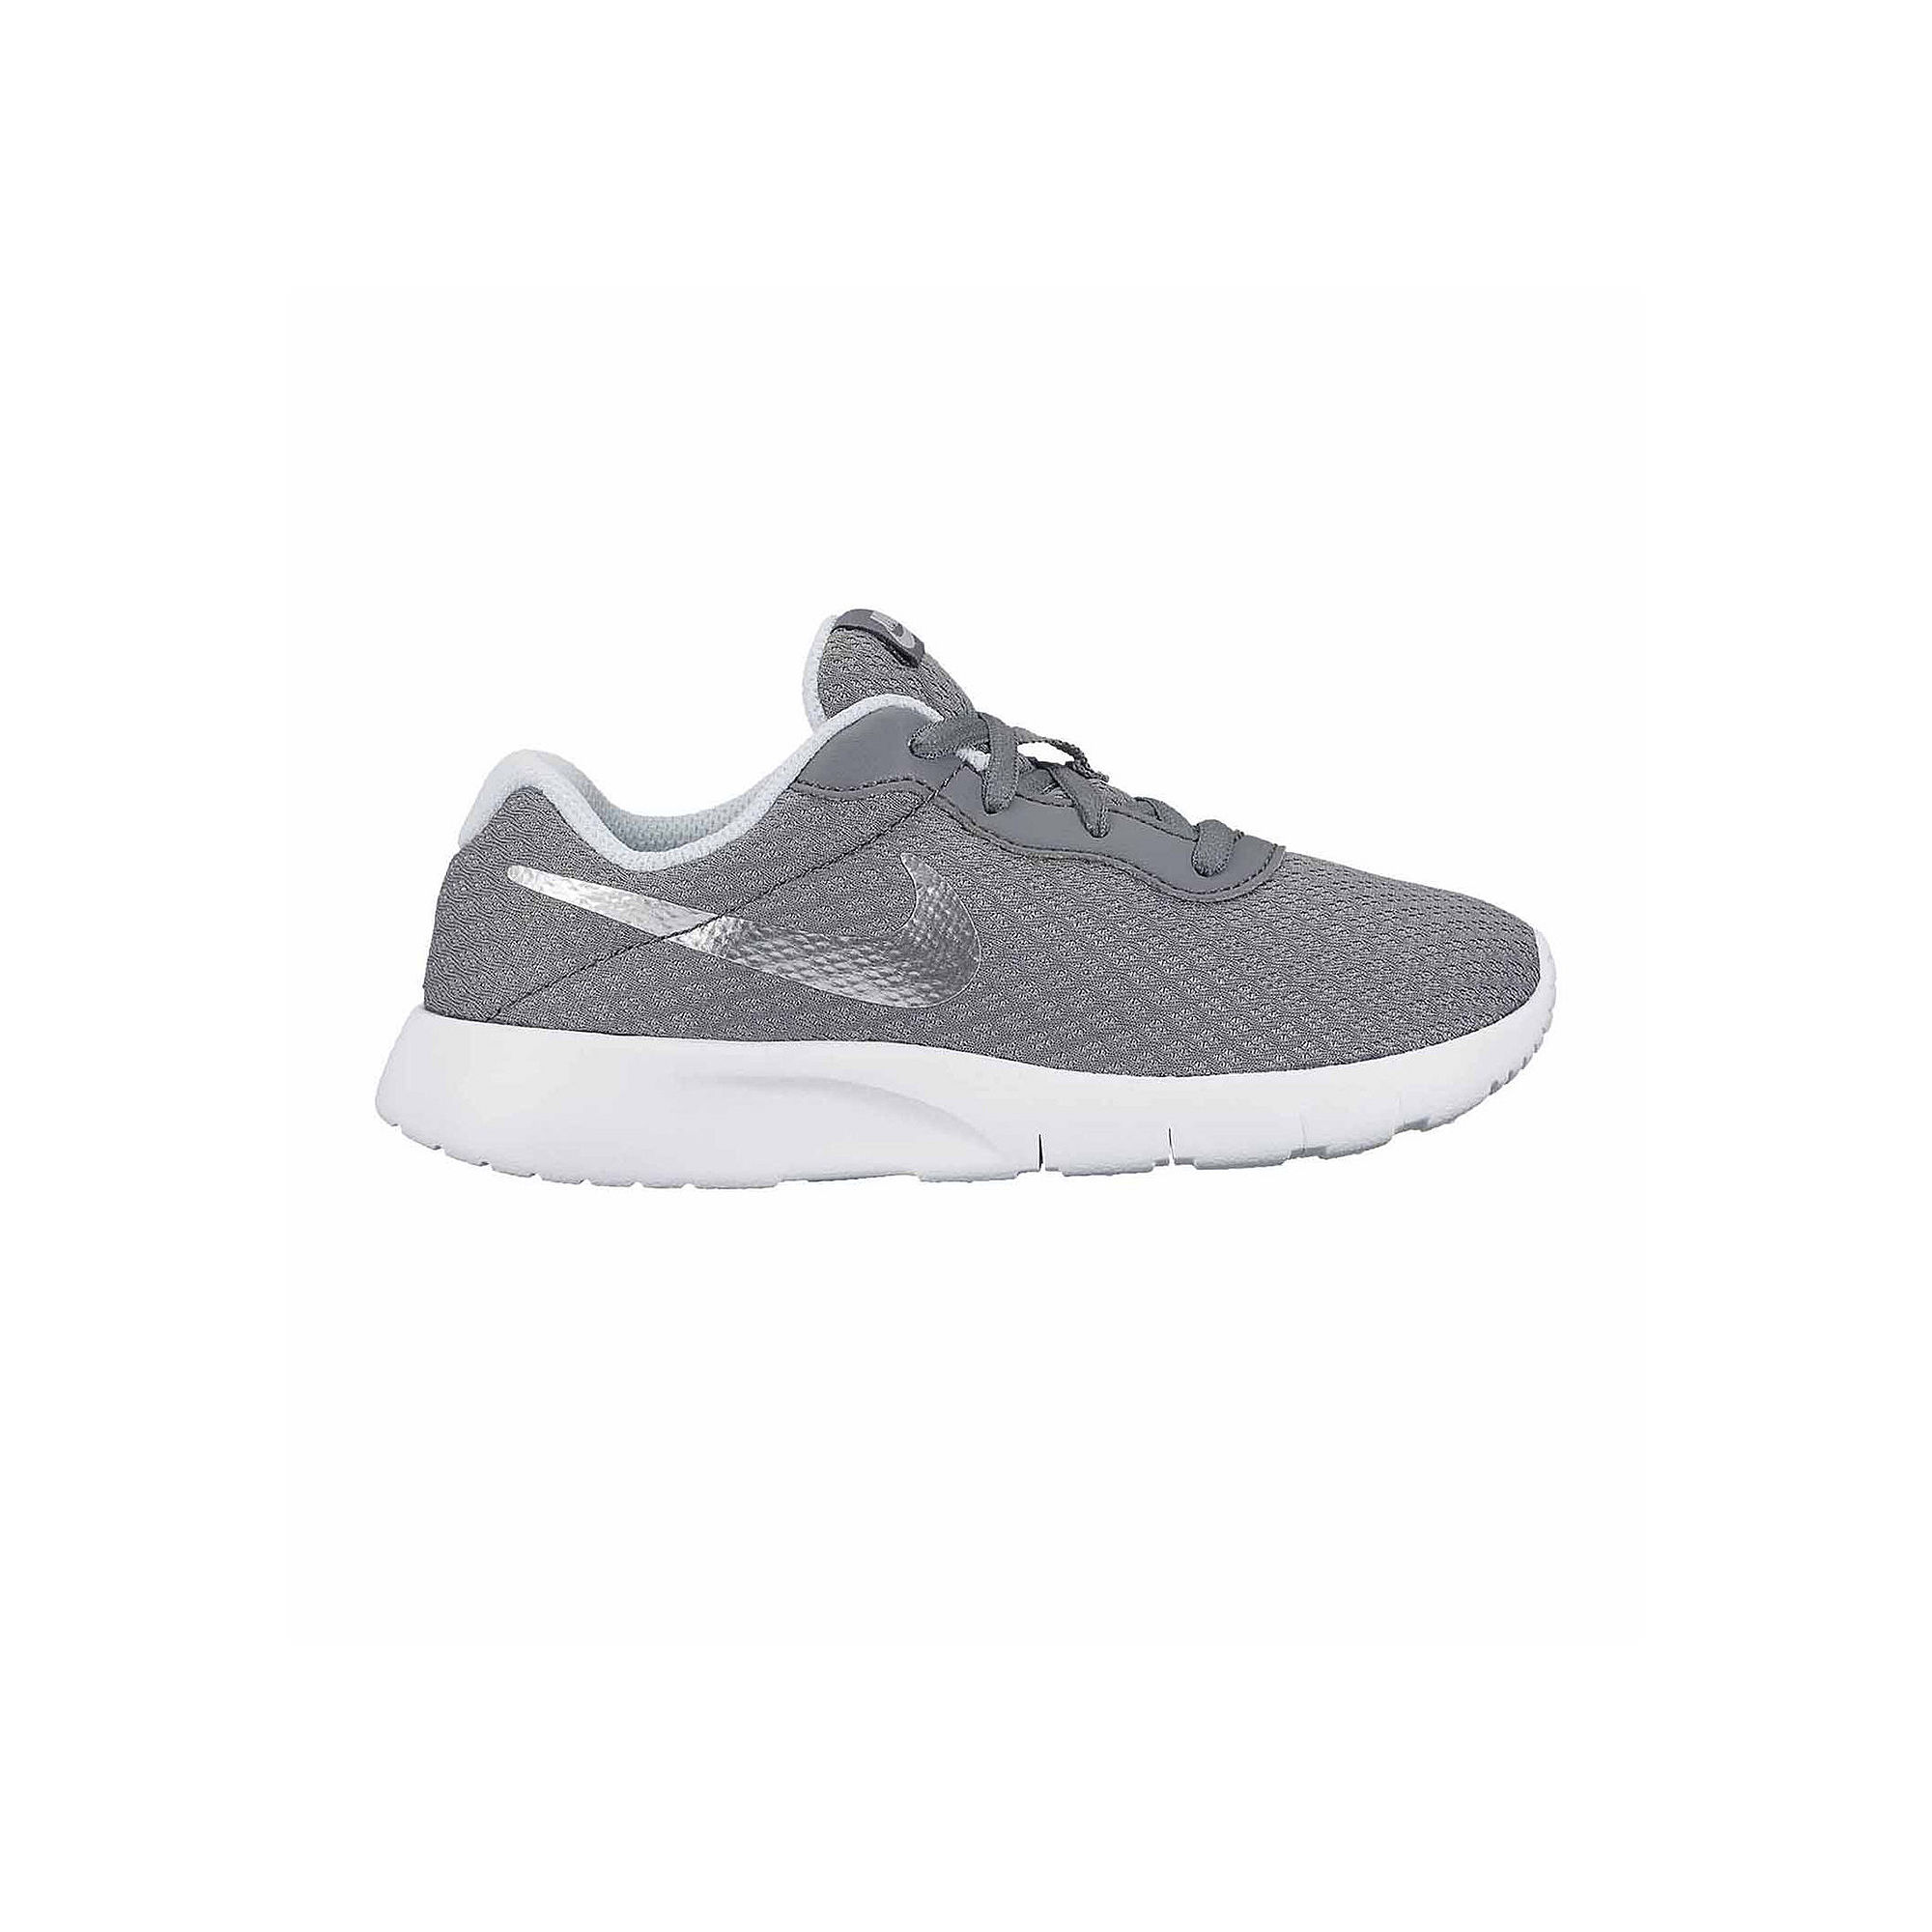 Nike Tanjun Girls Sneakers - Little Kids